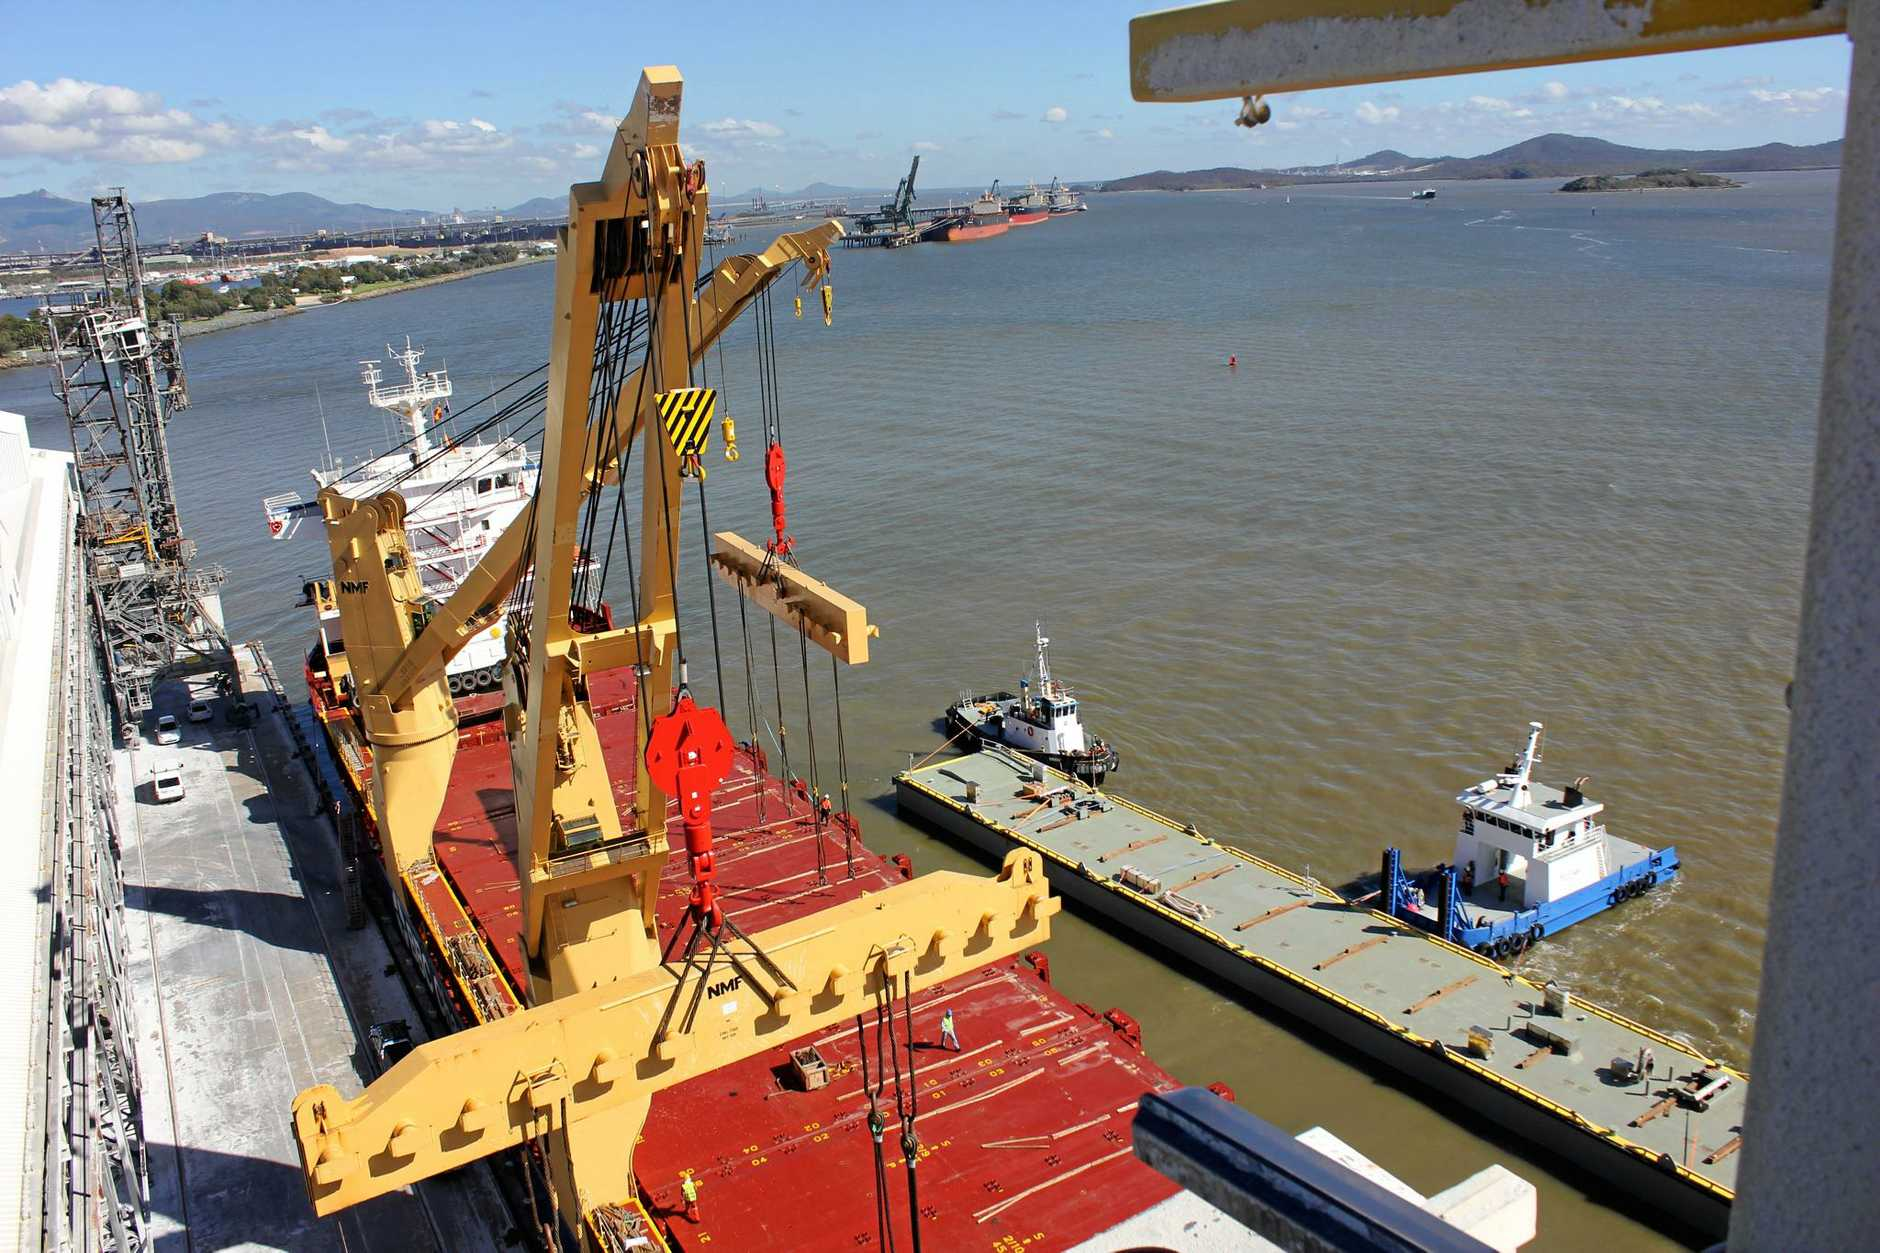 A pontoon for the new Tug Harbour facility is unloaded at Auckland Point Wharf.